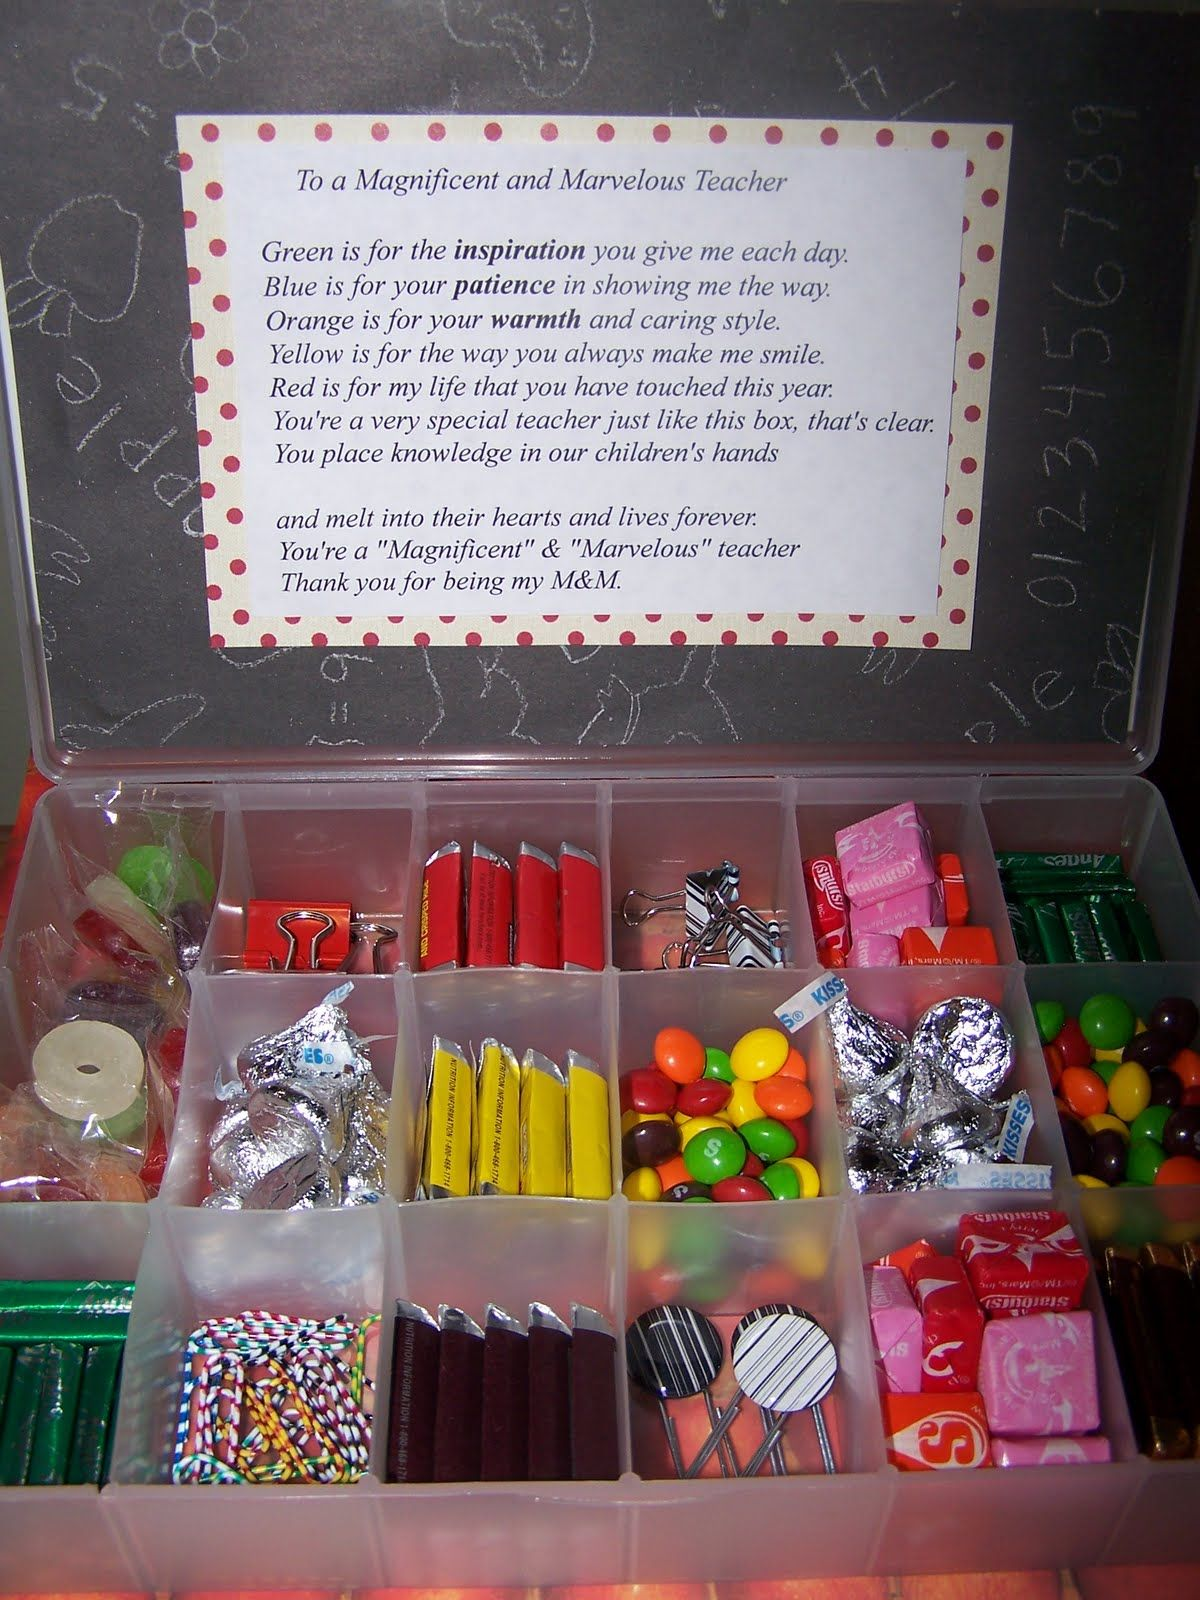 Teacher Appreciation Gift This Is Wonderful With Candy Office Supplies And Anything Else You Can Teacher Gifts Appreciation Gifts Teacher Appreciation Gifts